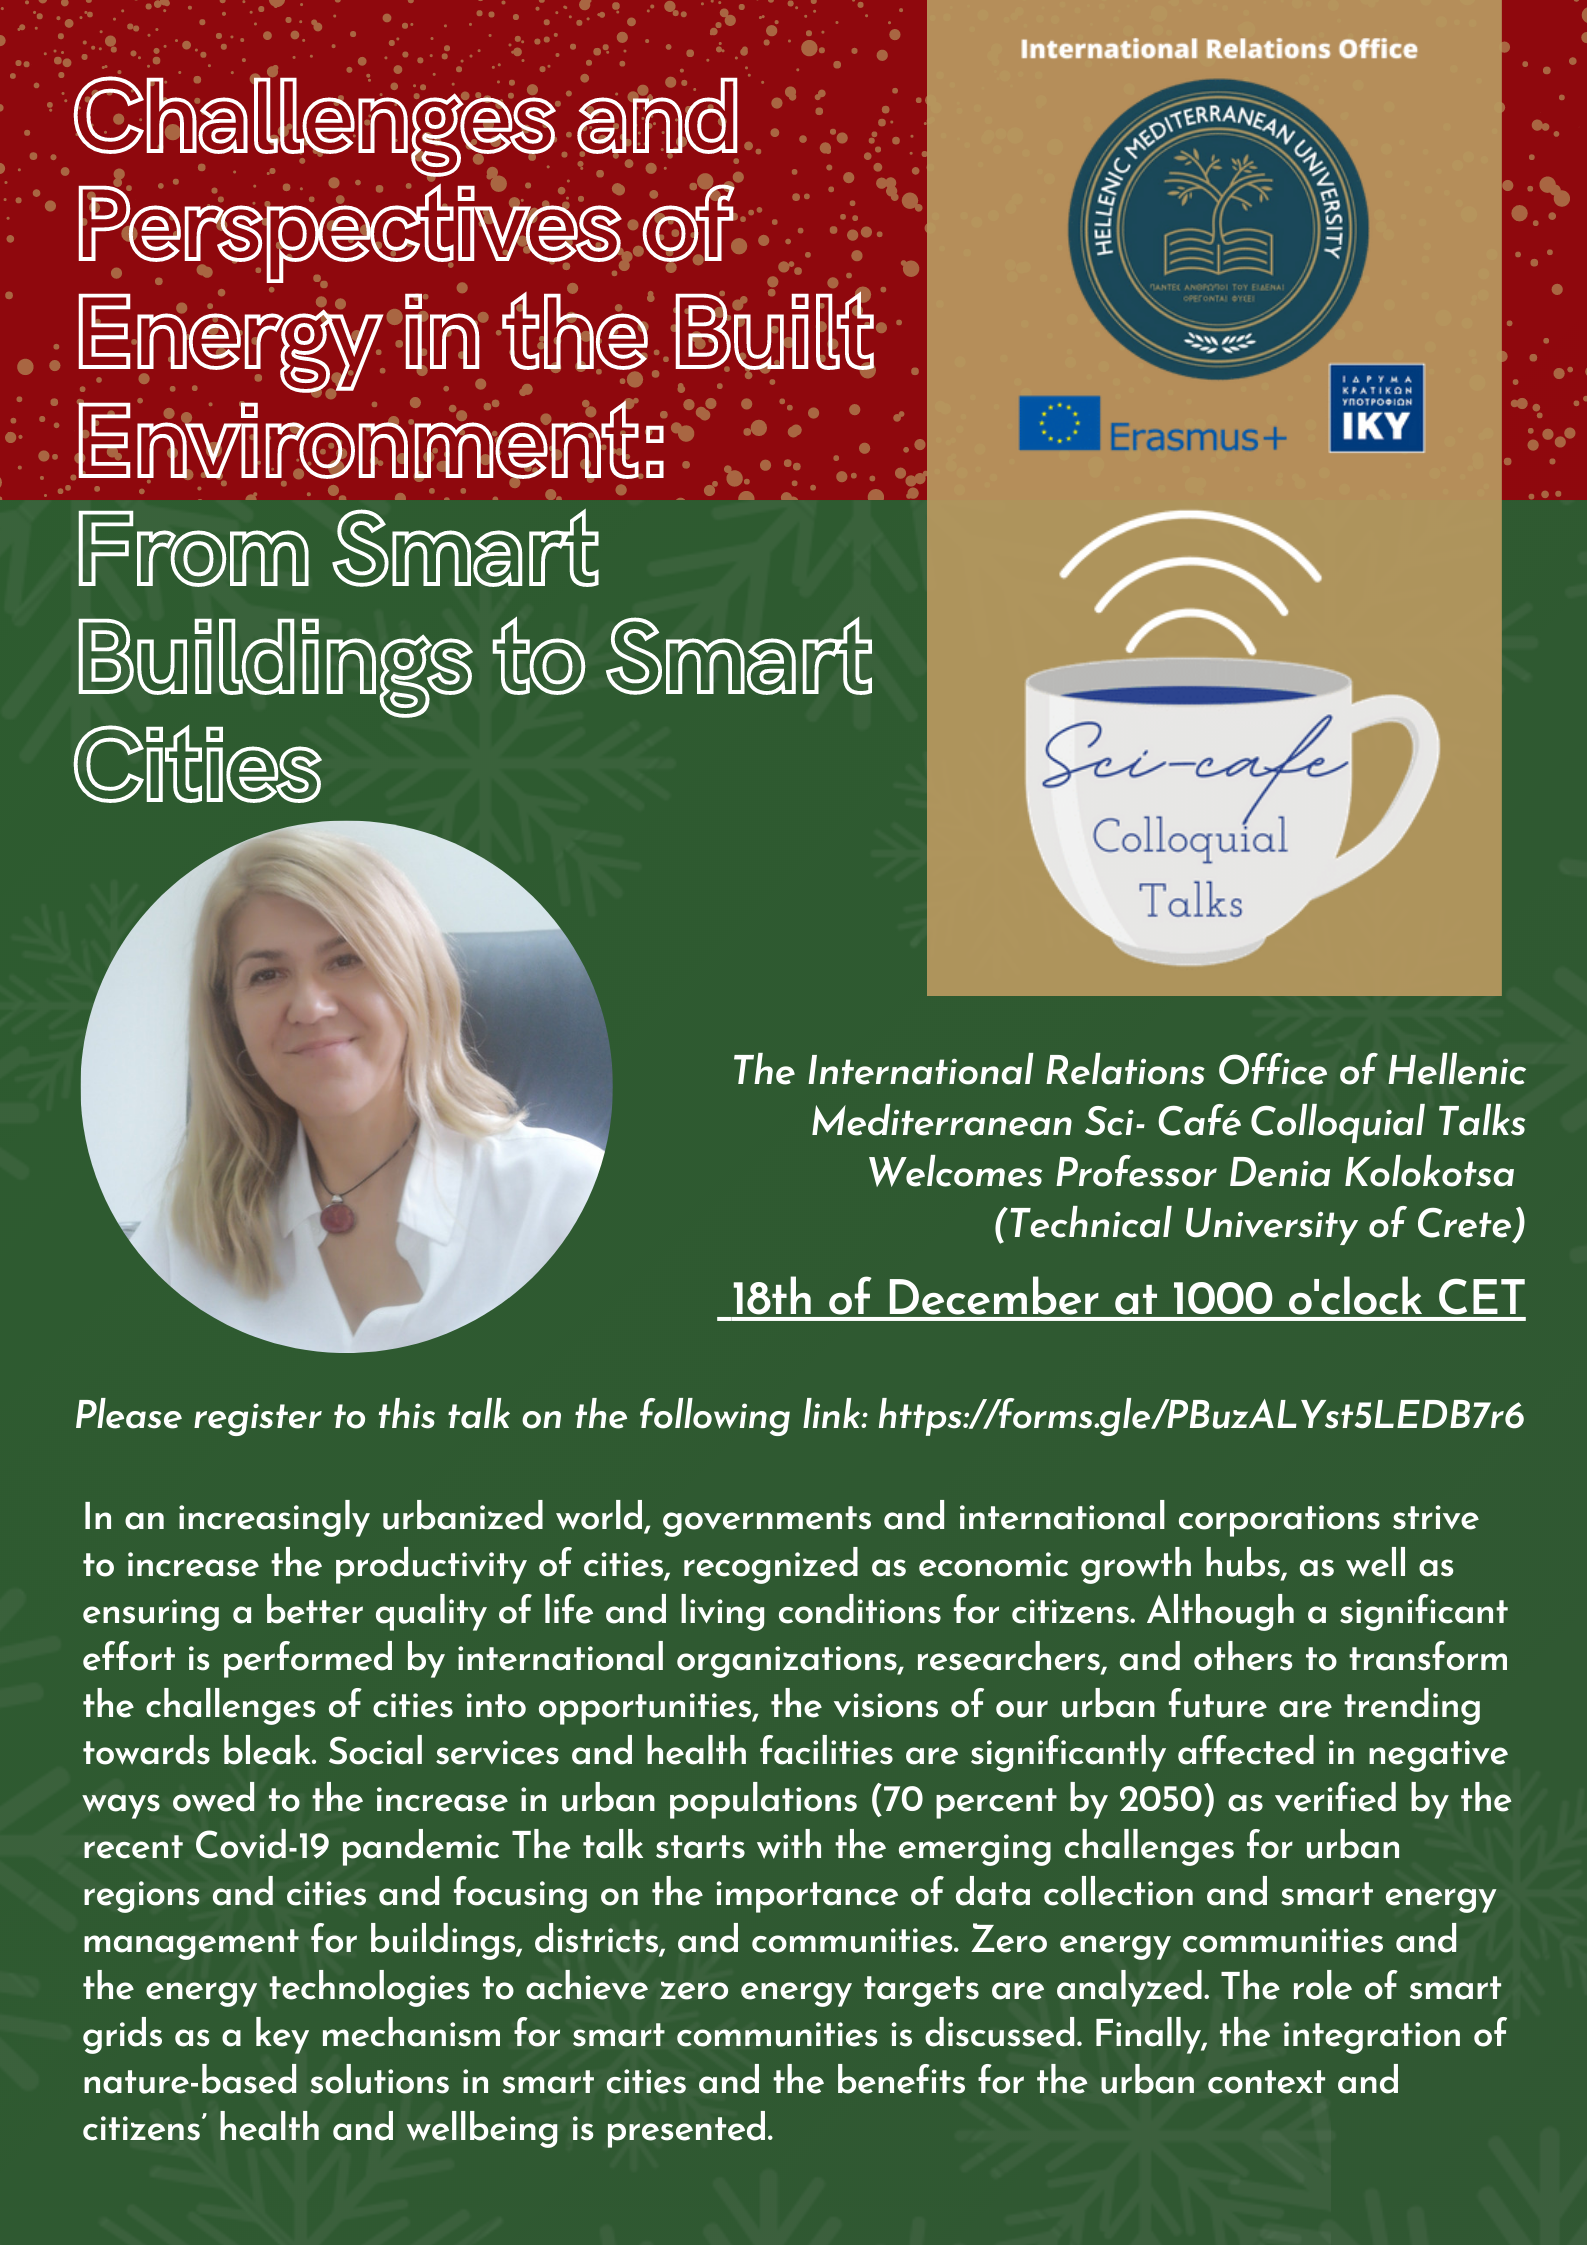 Webinar: Challenges and Perspectives of Energy in the Built Environment: From Smart Buildings to Smart Cities